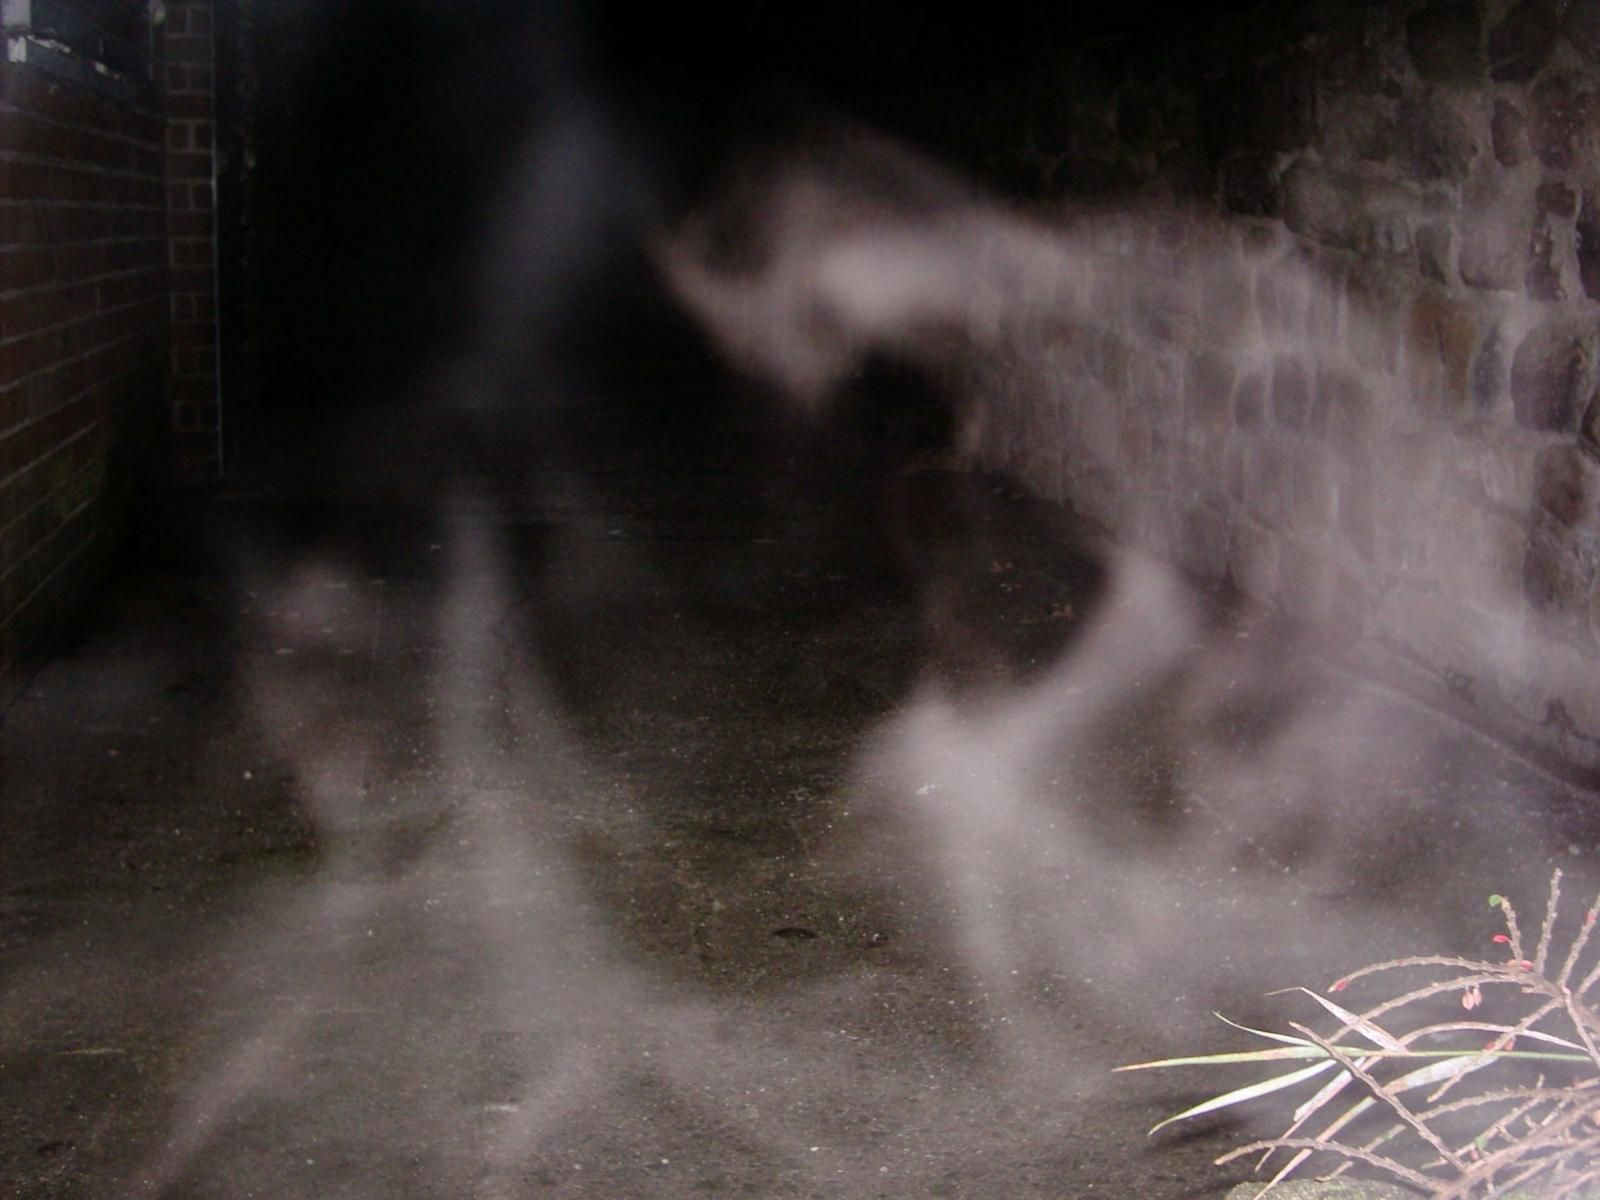 St. Paul's church entity - Mists and Vapours - Gallery - Ghost Mysteries Discussion Forums